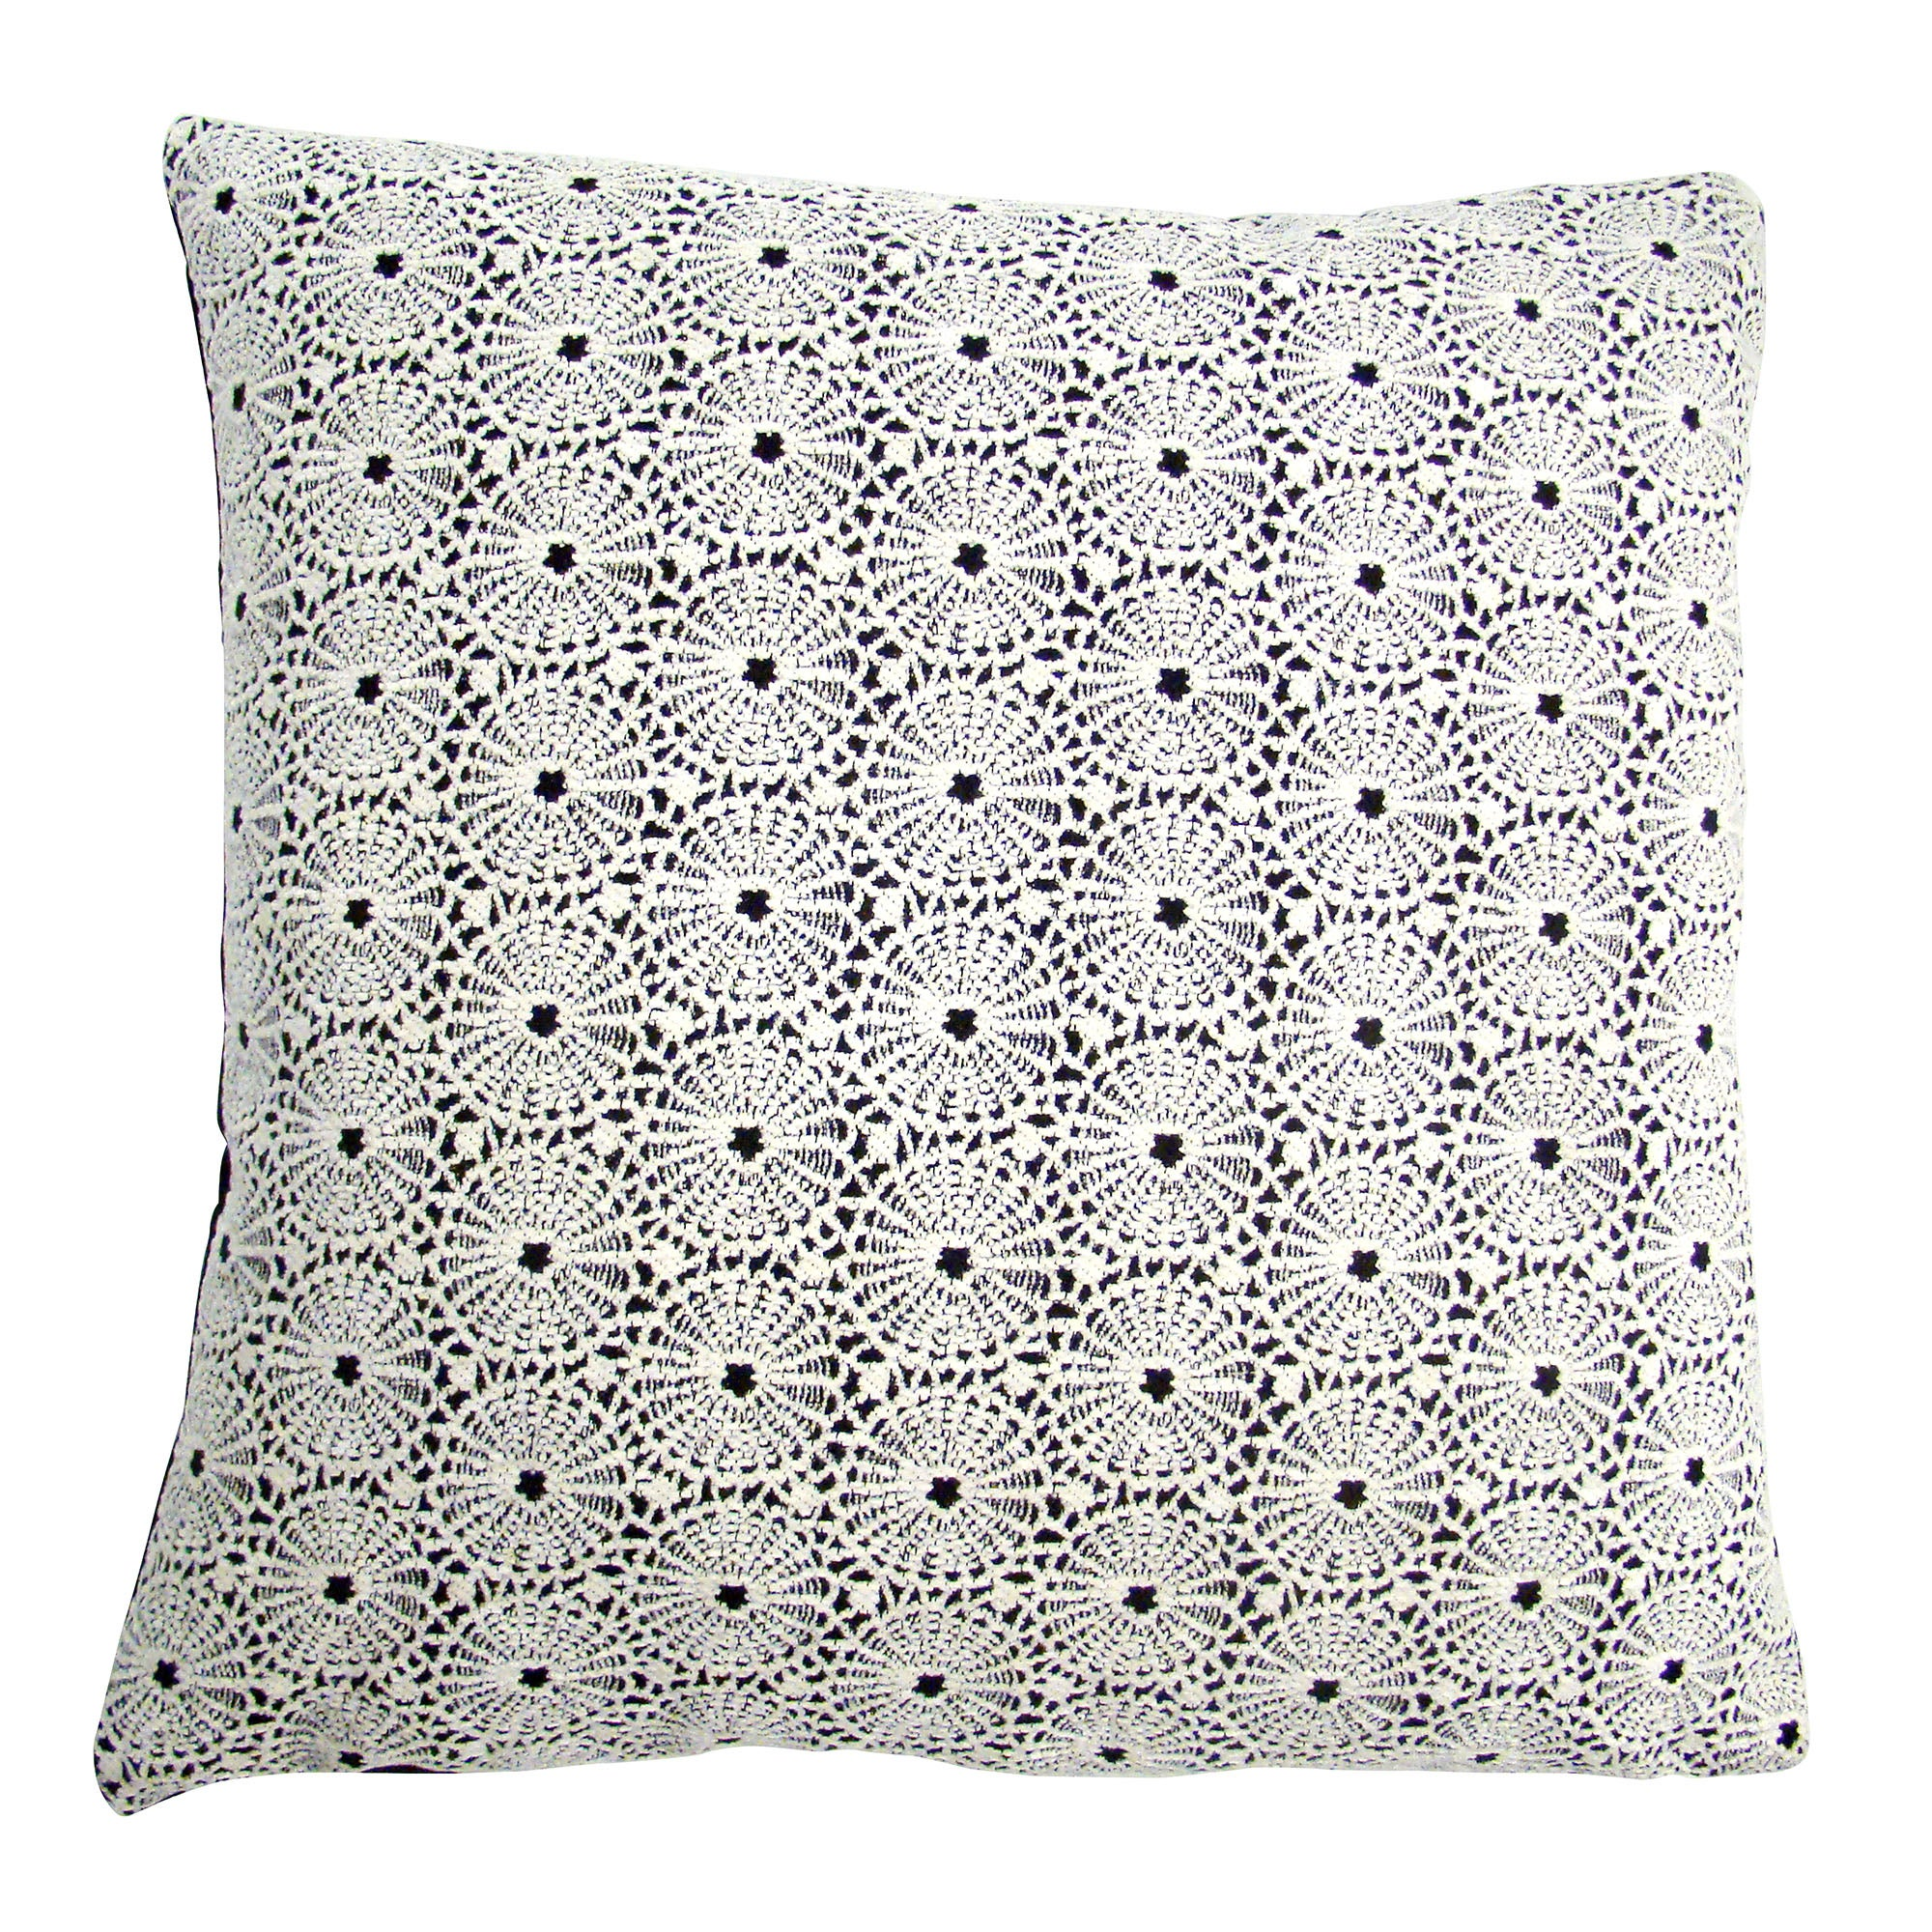 Modena Cushion Cover